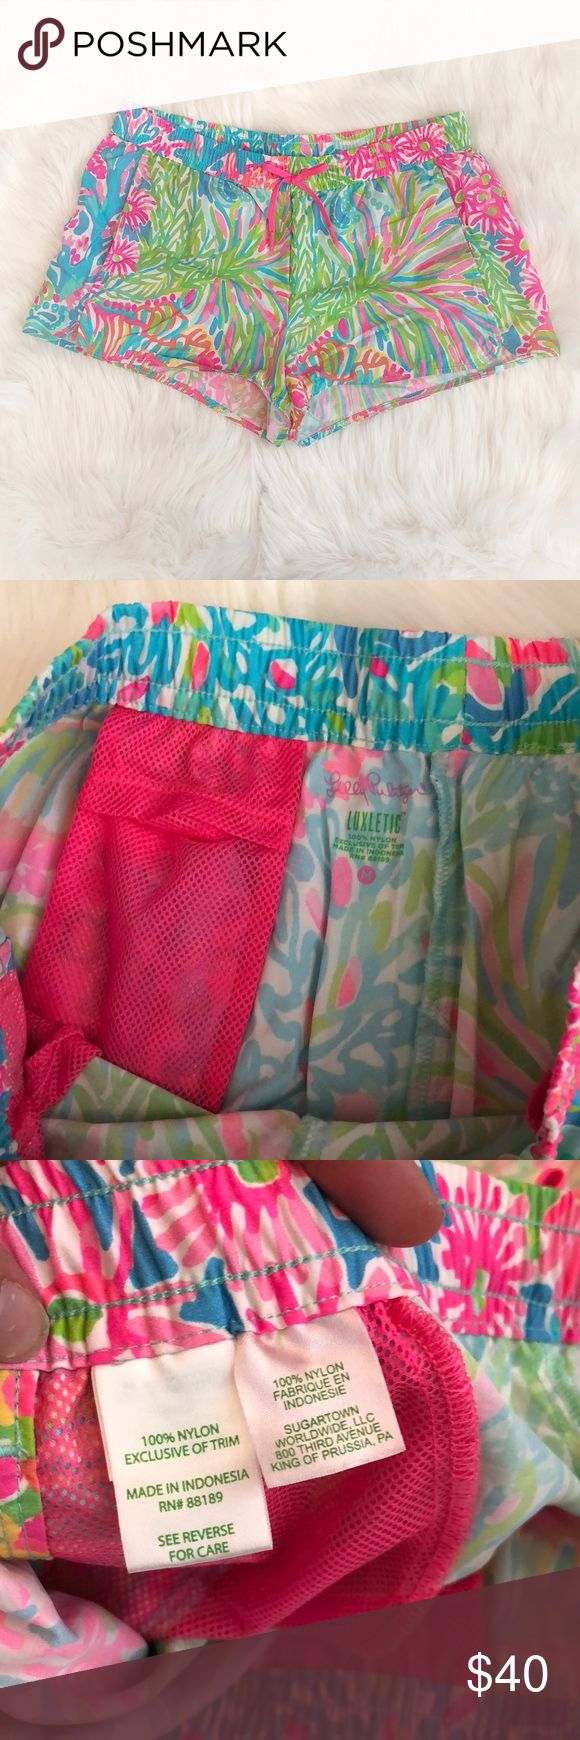 Lilly Pulitzer Luxletic Lovers Coral Shorts Worn once. Very Vibrant and comfortable! Size medium. Coming from a pet friendly home! Lilly Pulitzer Shorts